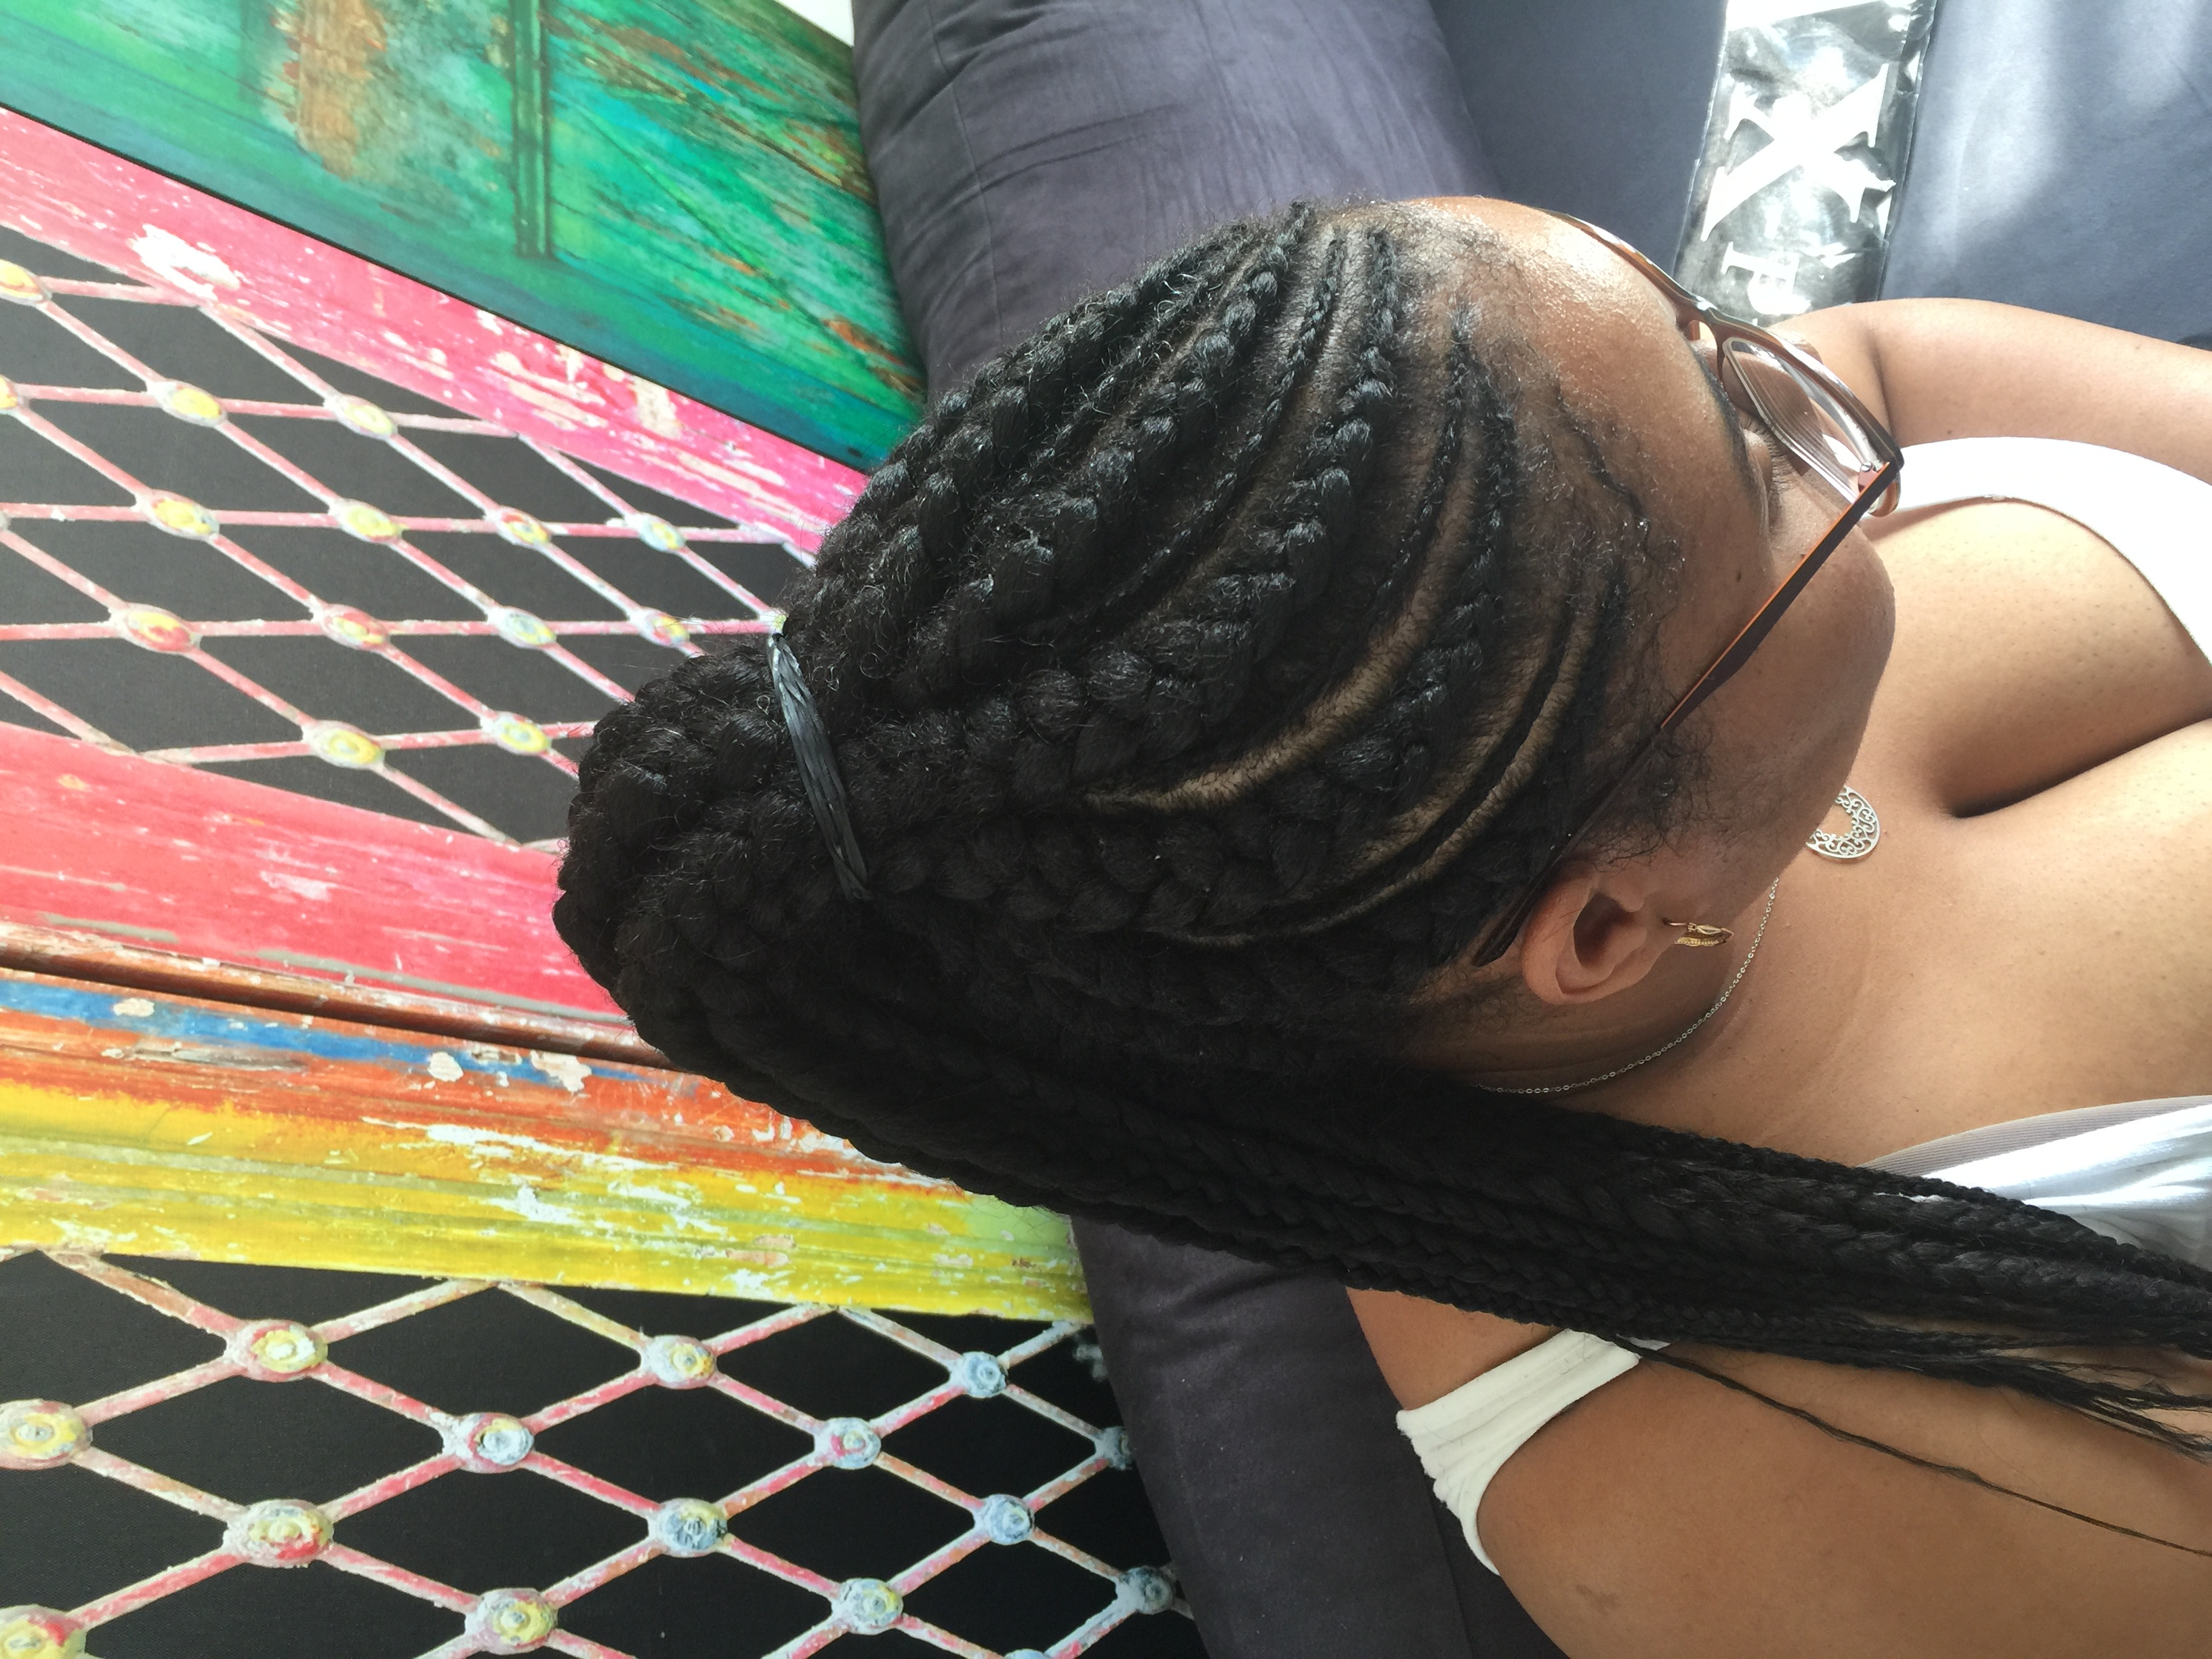 salon de coiffure afro tresse tresses box braids crochet braids vanilles tissages paris 75 77 78 91 92 93 94 95 LZVKKZSU